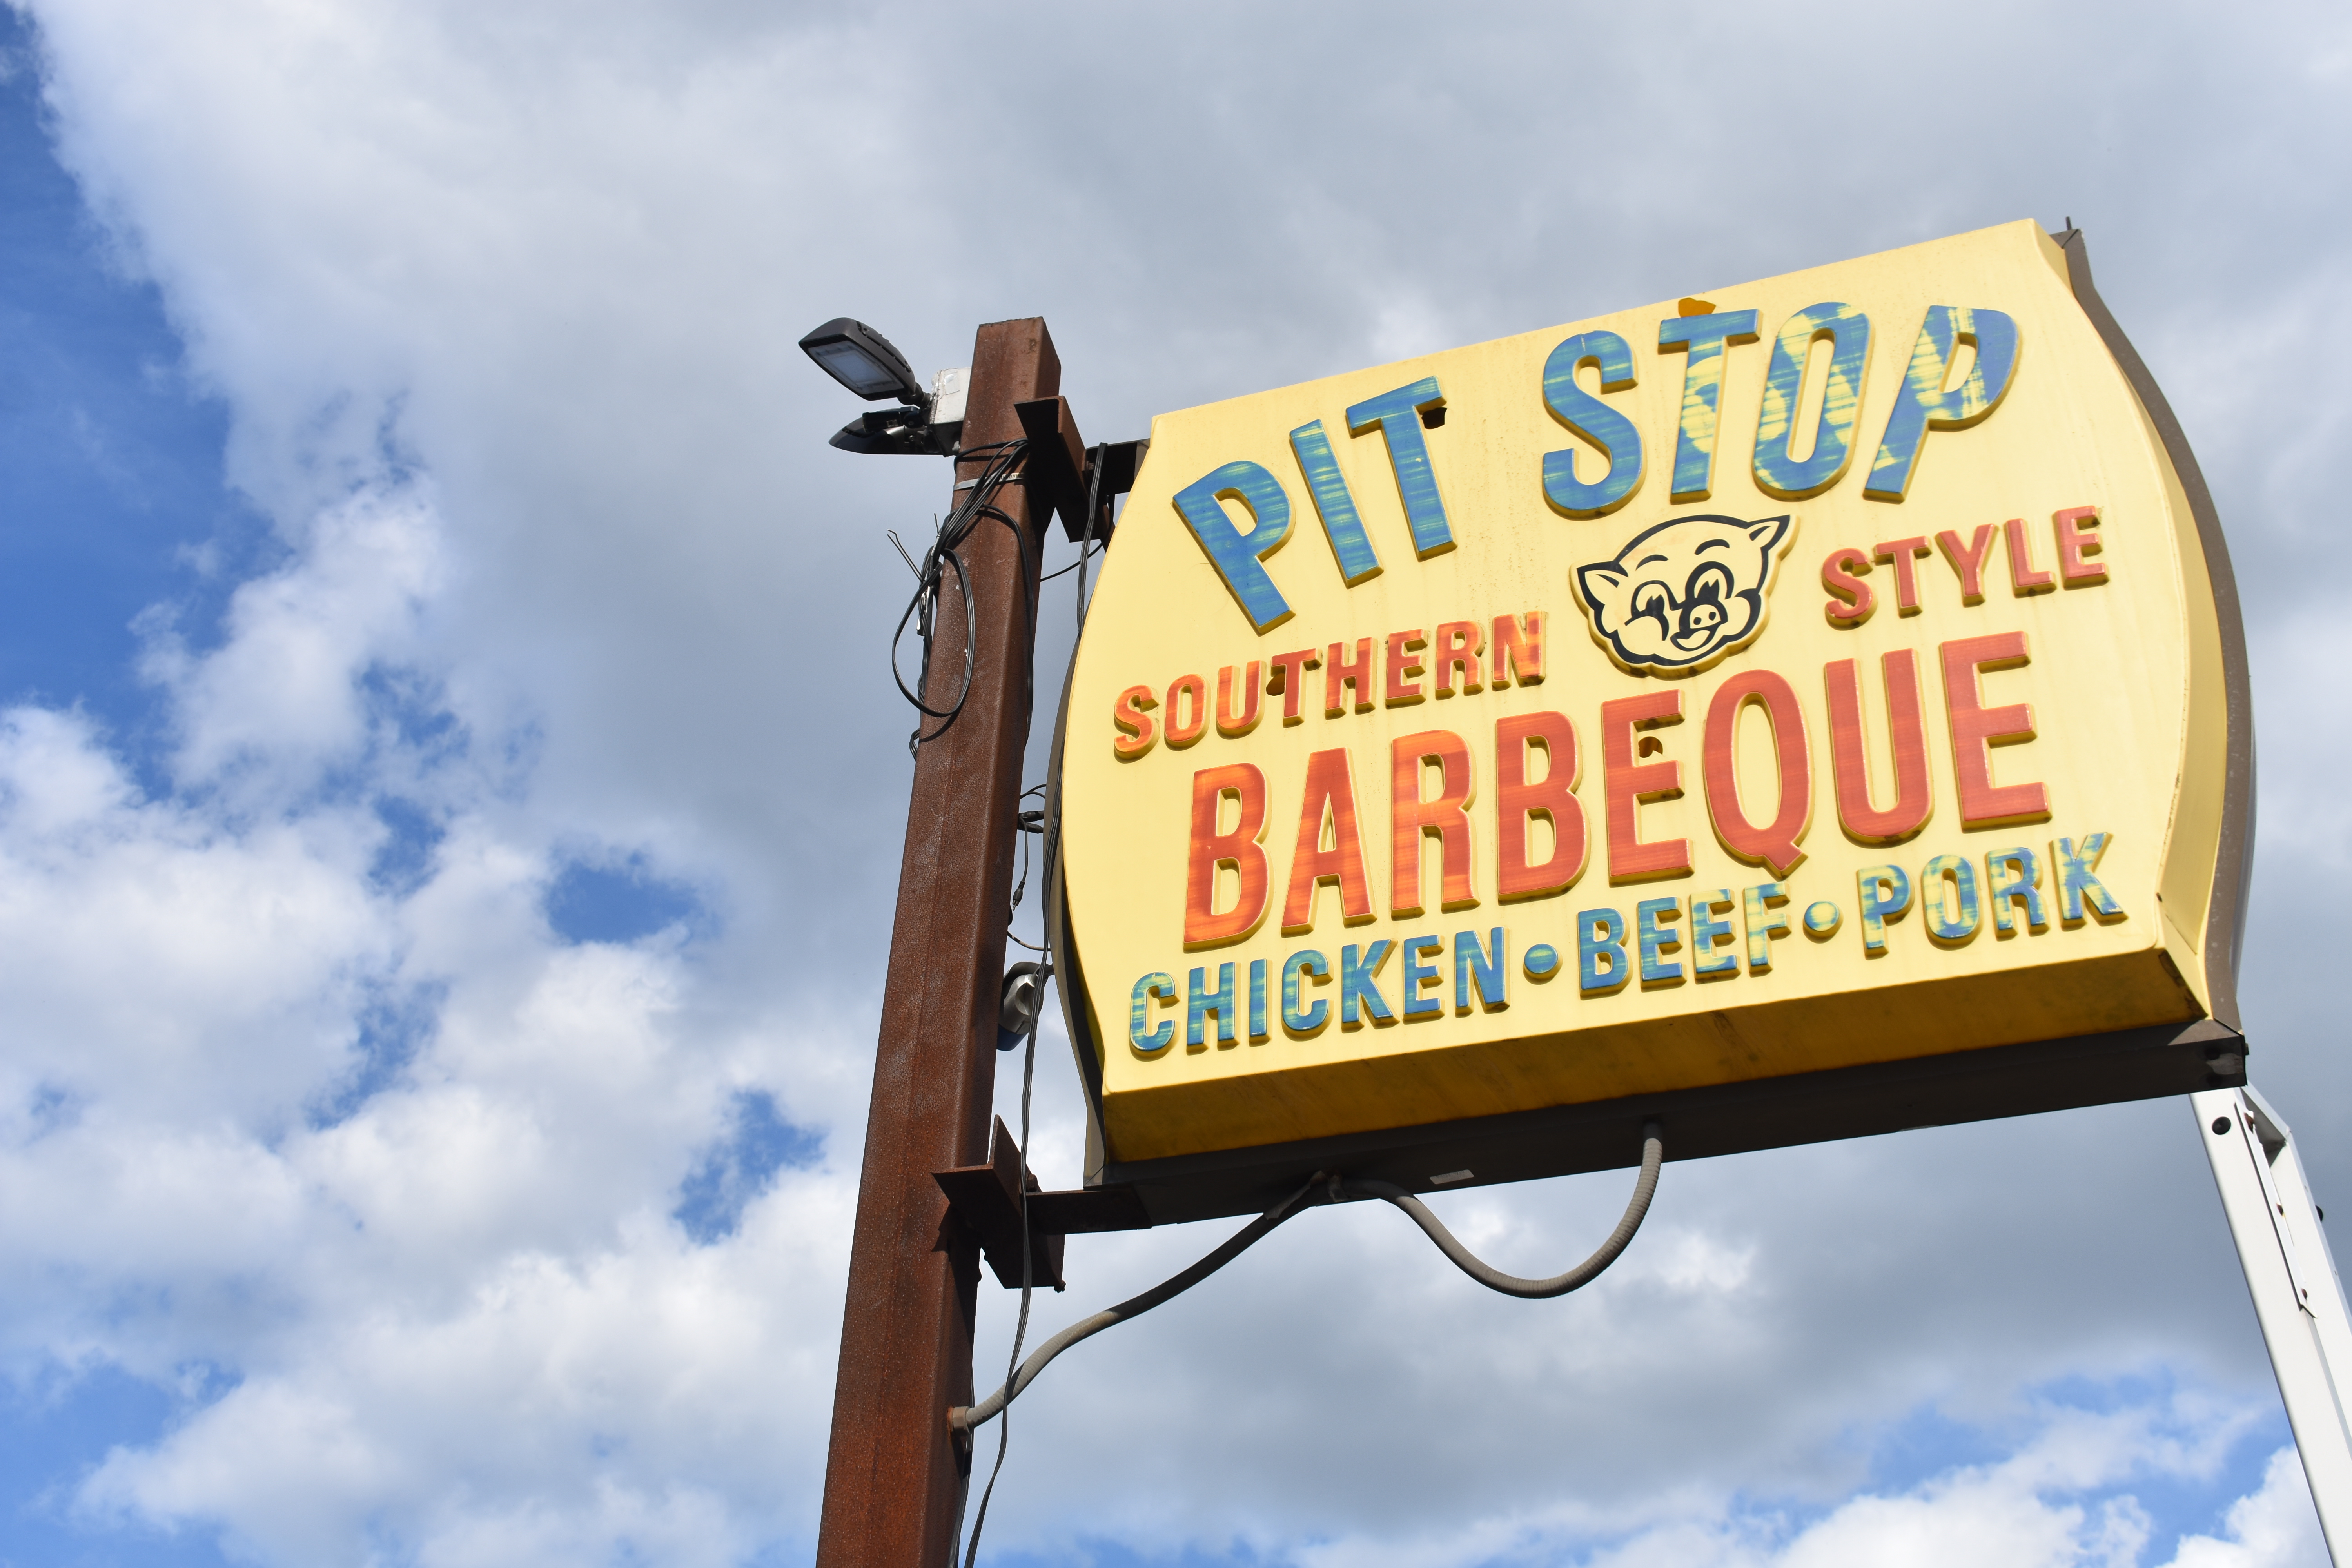 A faded restaurant sign is visible against a blue sky full of puffy white clouds. The sign says Pit Stop Southern Style Barbeque Chicken Beef Pork, and there's a cartoon image of a pig's face